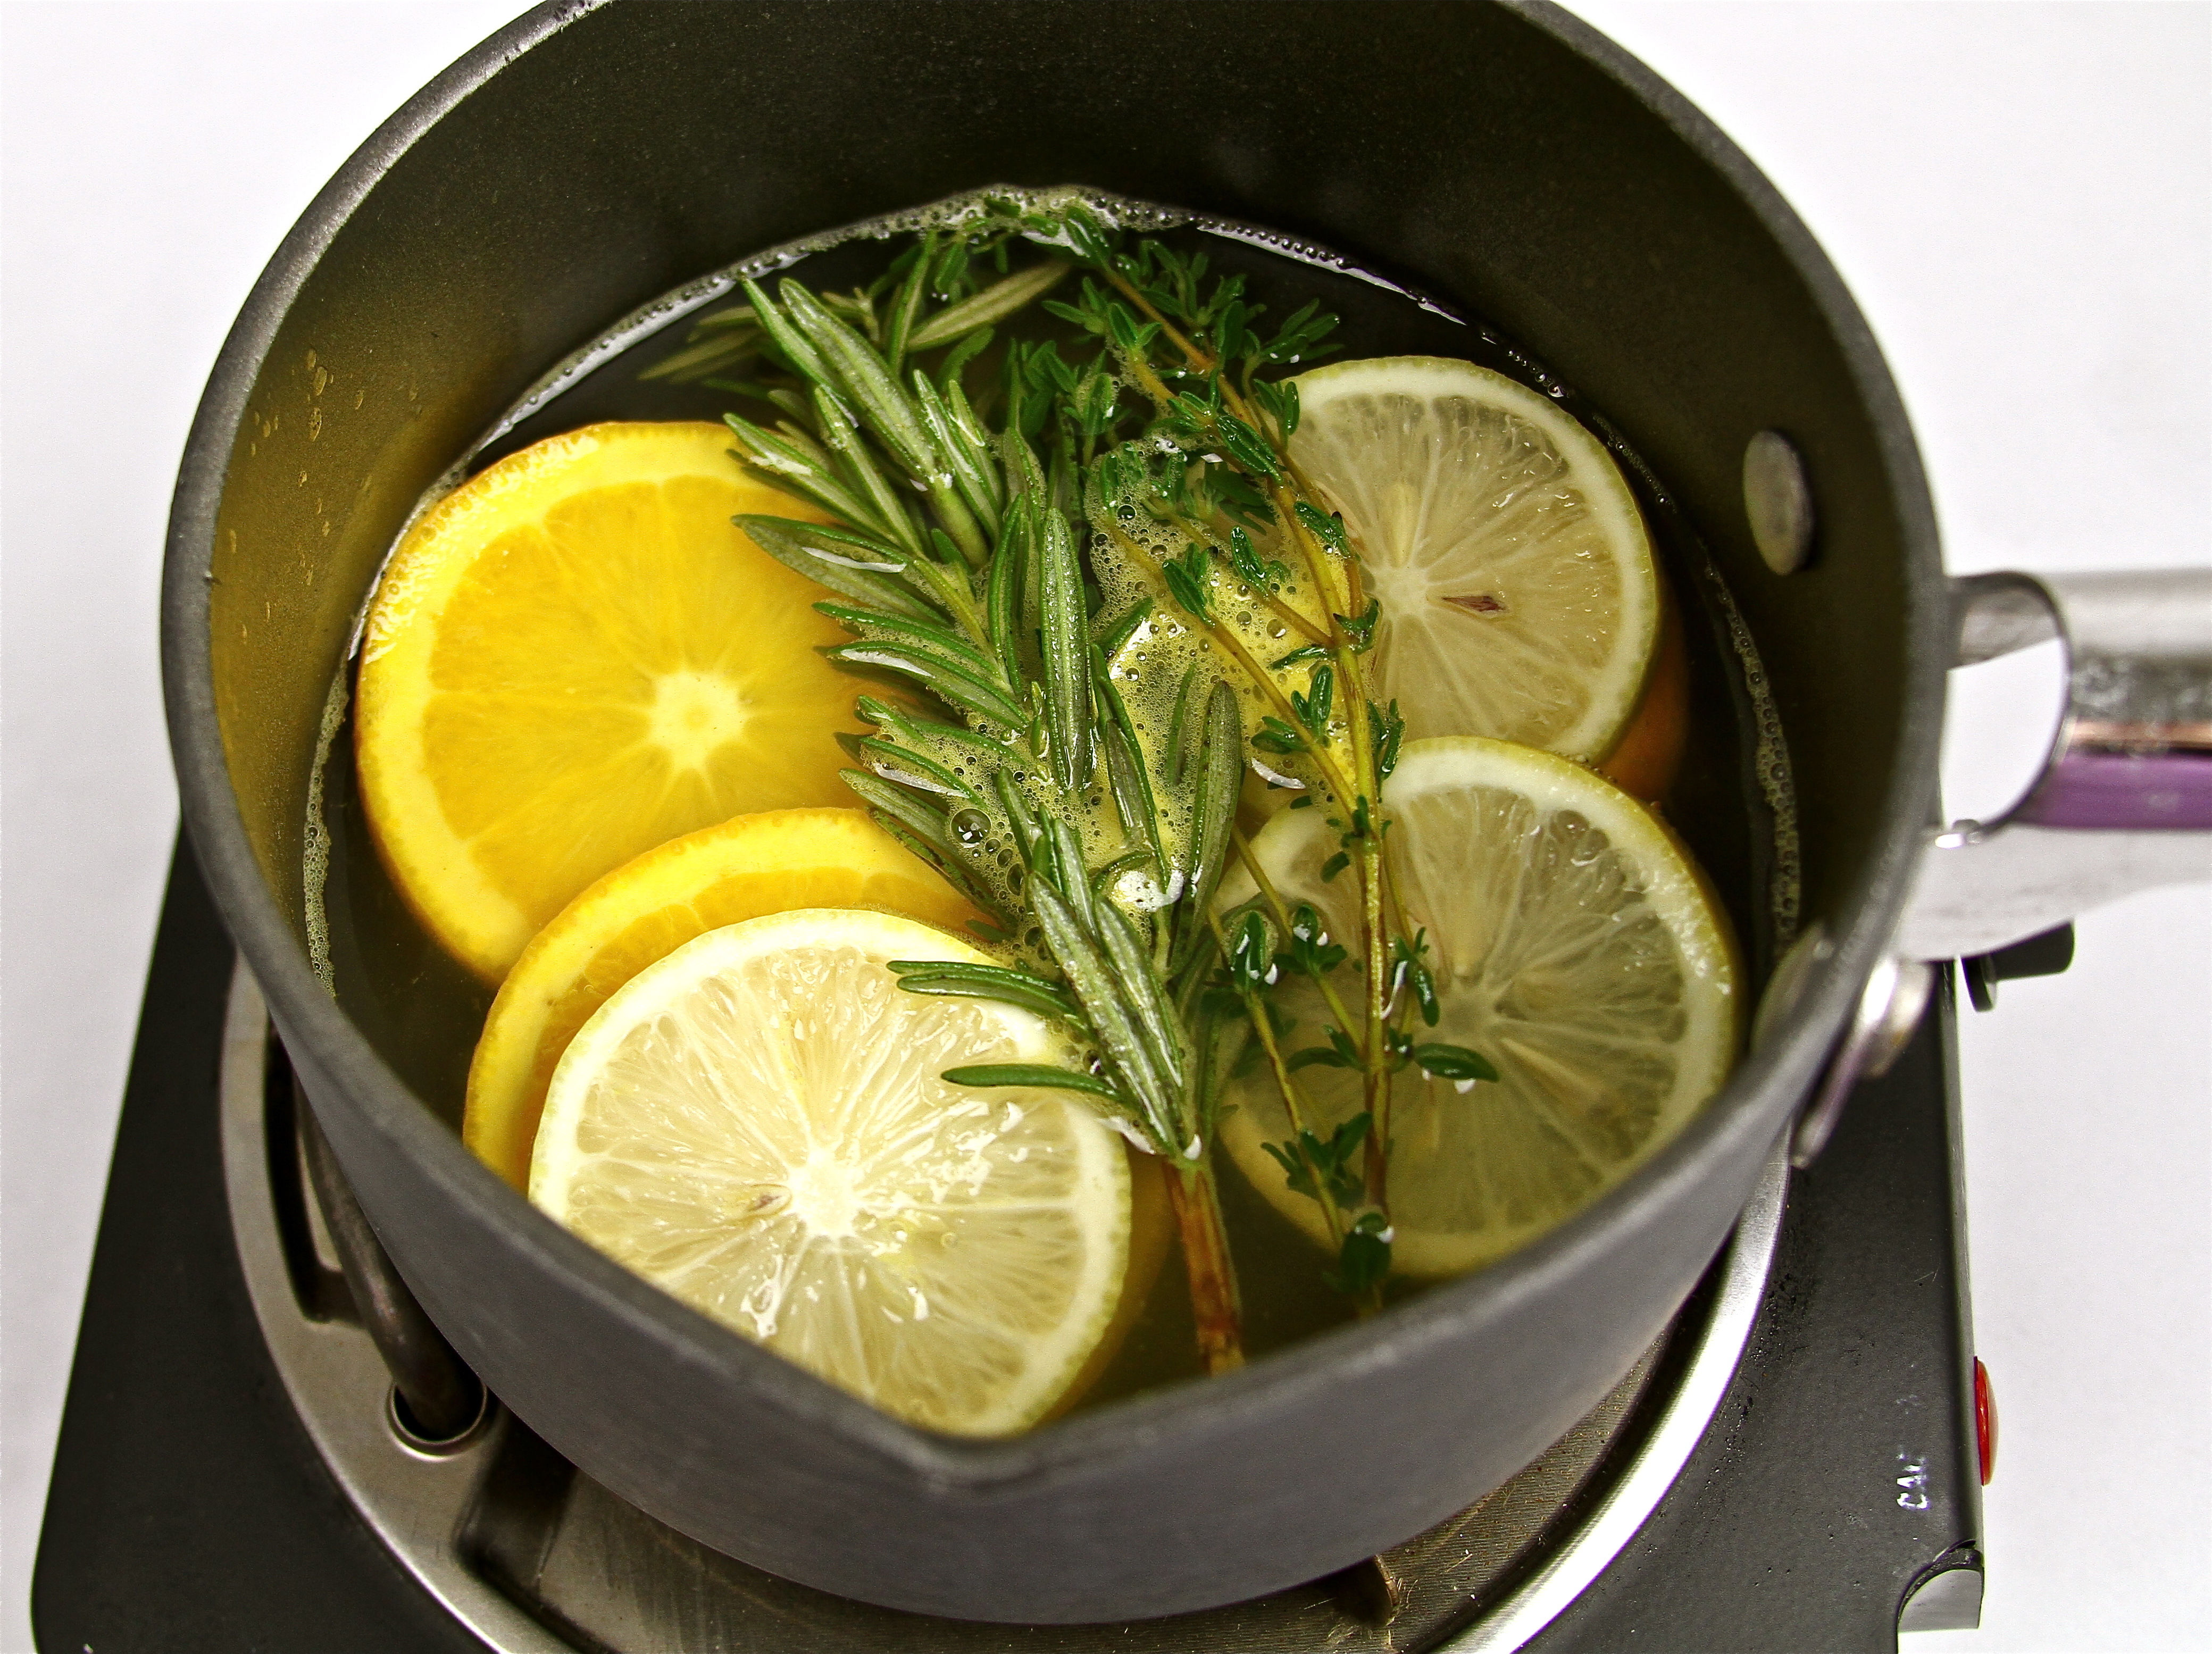 Lemon-and-eucalyptus-used-as-a-air-freshener.